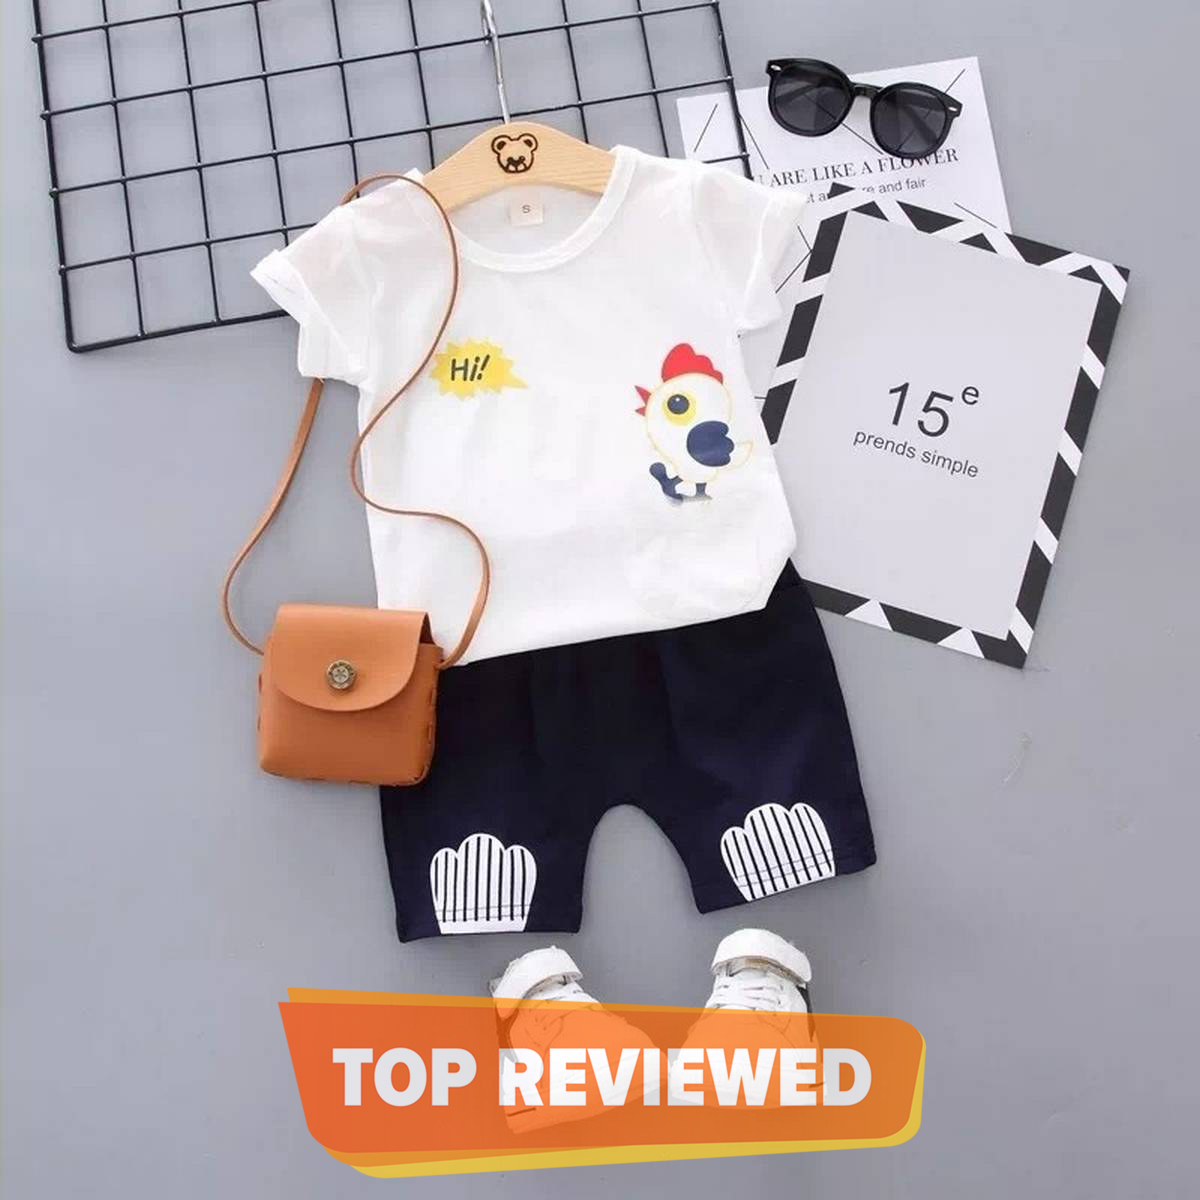 T-Shirt And Short Pant For Kids Baby Boys And Girls Round Neck Short Sleeves Tee Tops Clothes Sets Dresses Outfit